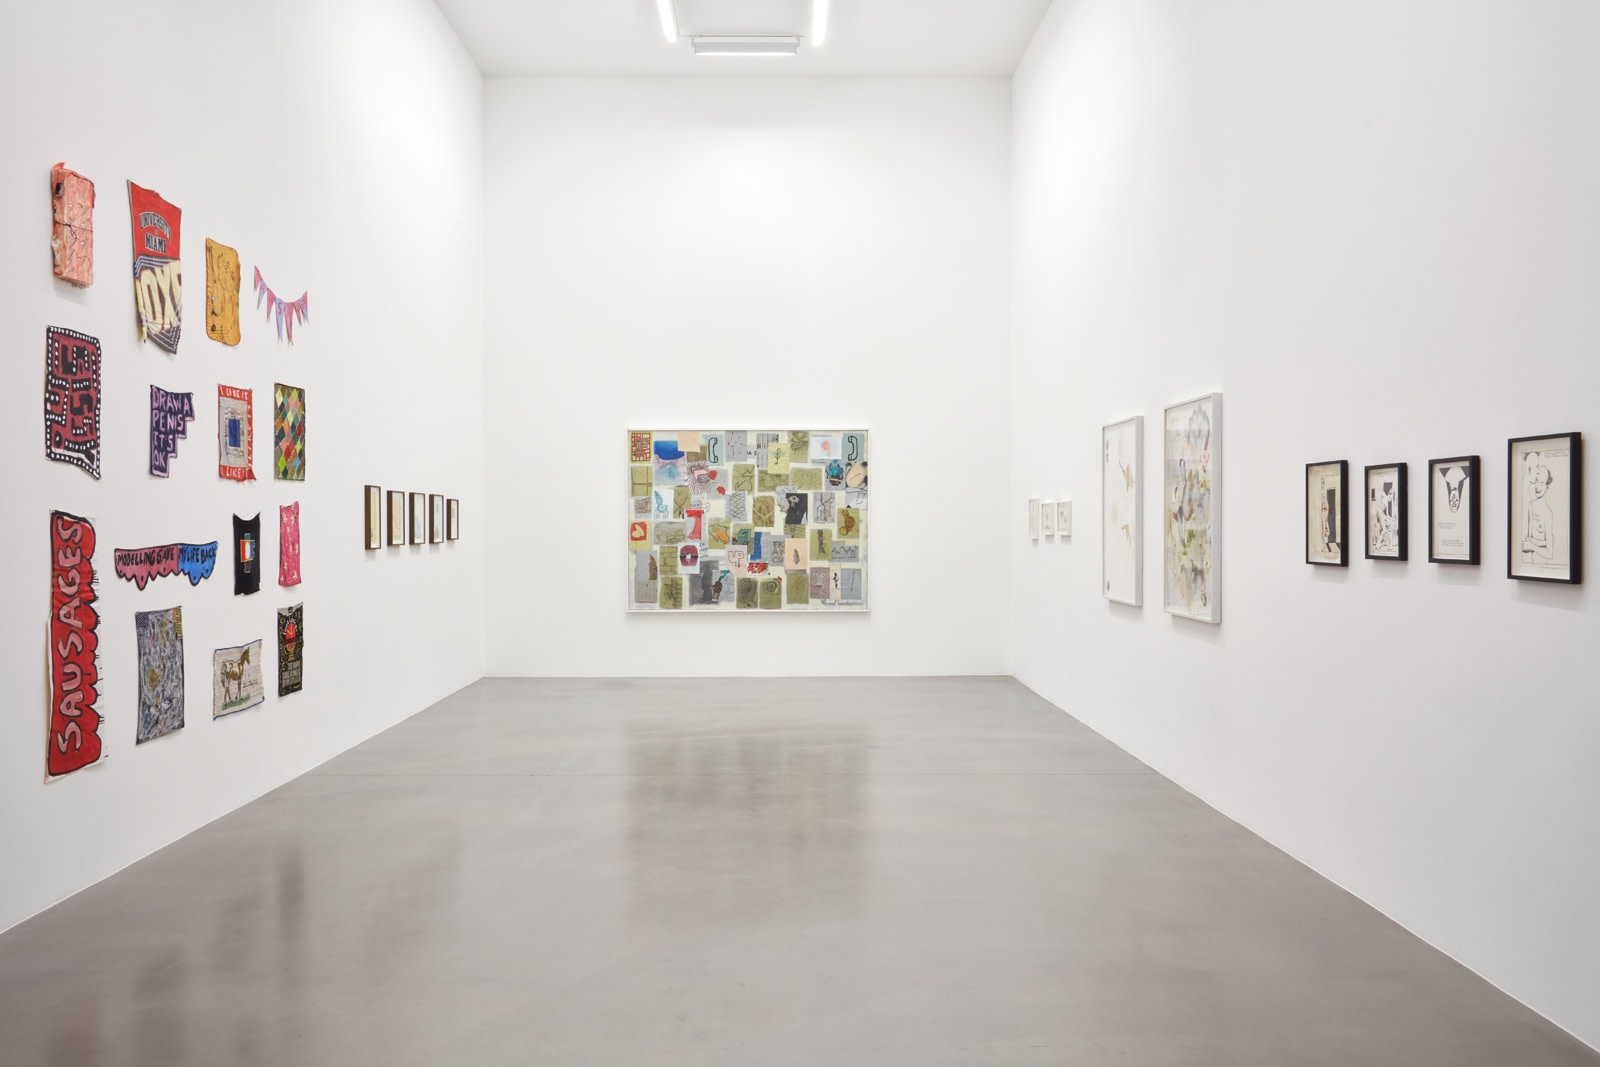 "<div class=""artwork_caption""><p><span class=""caption"">Installation View, 2017<br />Photo by Robert Glowacki</span> </p></div>"